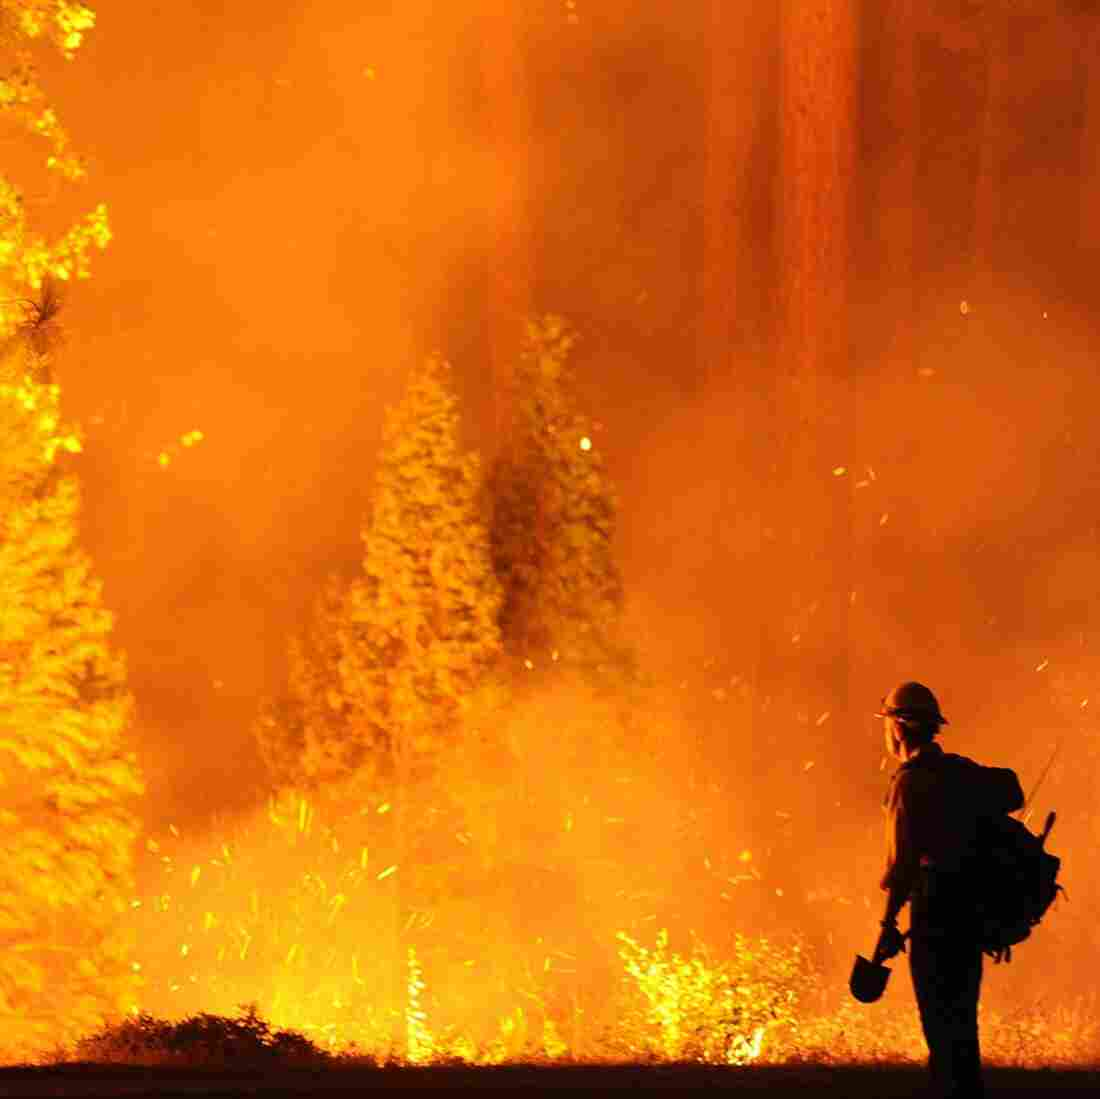 'Fire Tracker': Online Tool To Monitor Blaze Near Yosemite